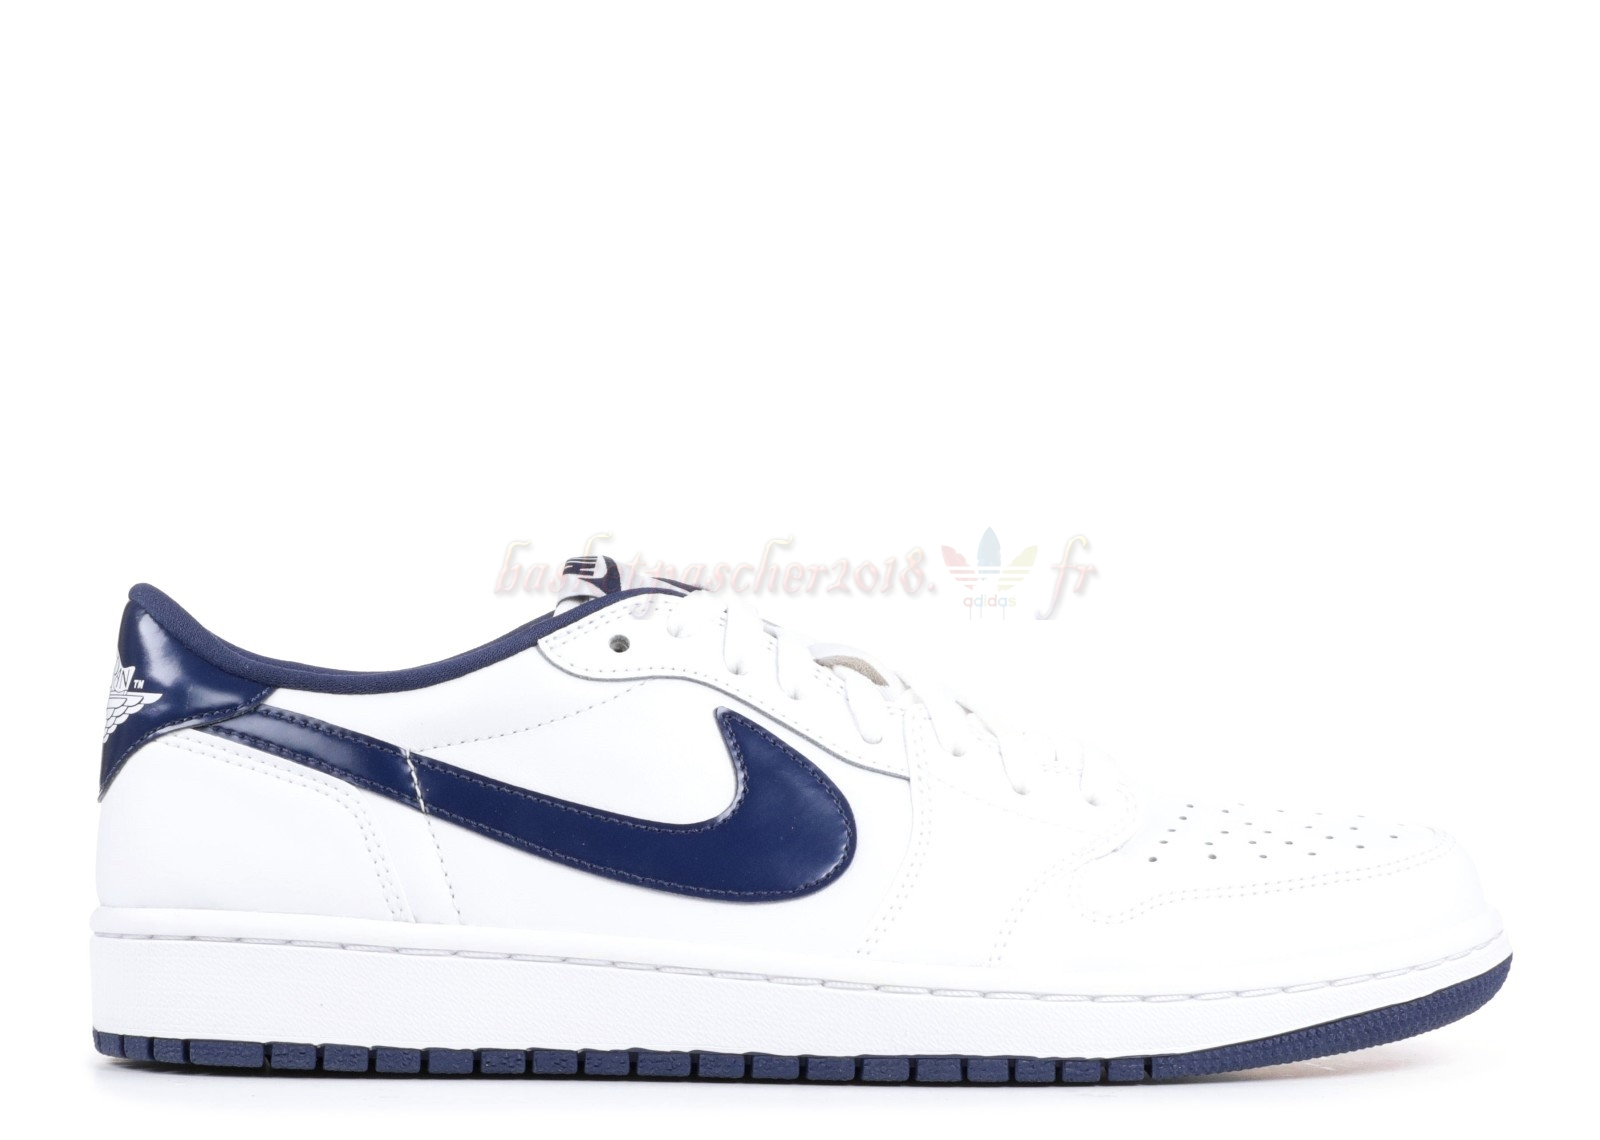 "Vente Chaude Chaussures De Basketball Homme Air Jordan 1 Retro Low Og ""Midnight Navy"" Blanc Marine (705329-106) Pas Cher"